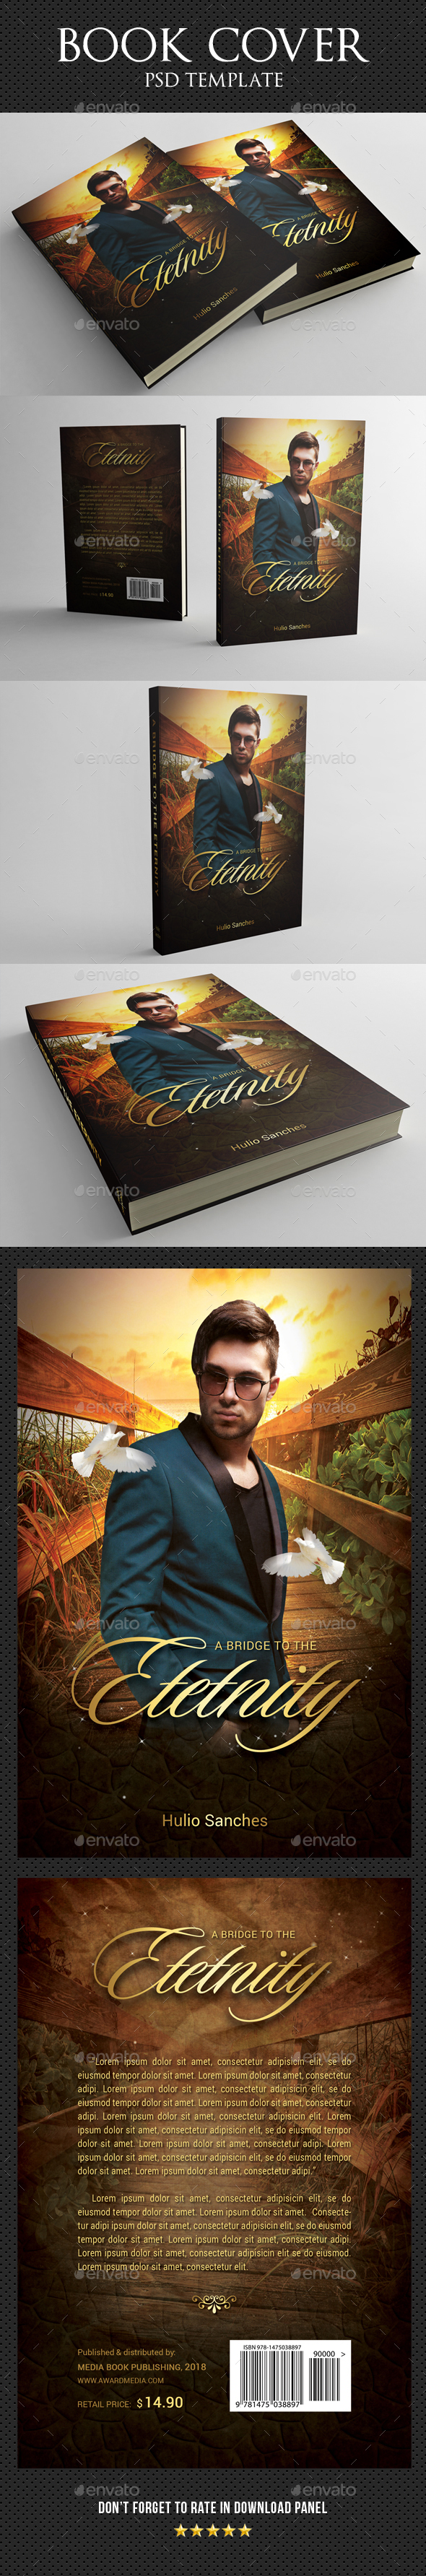 Book Cover Template 38 - Miscellaneous Print Templates